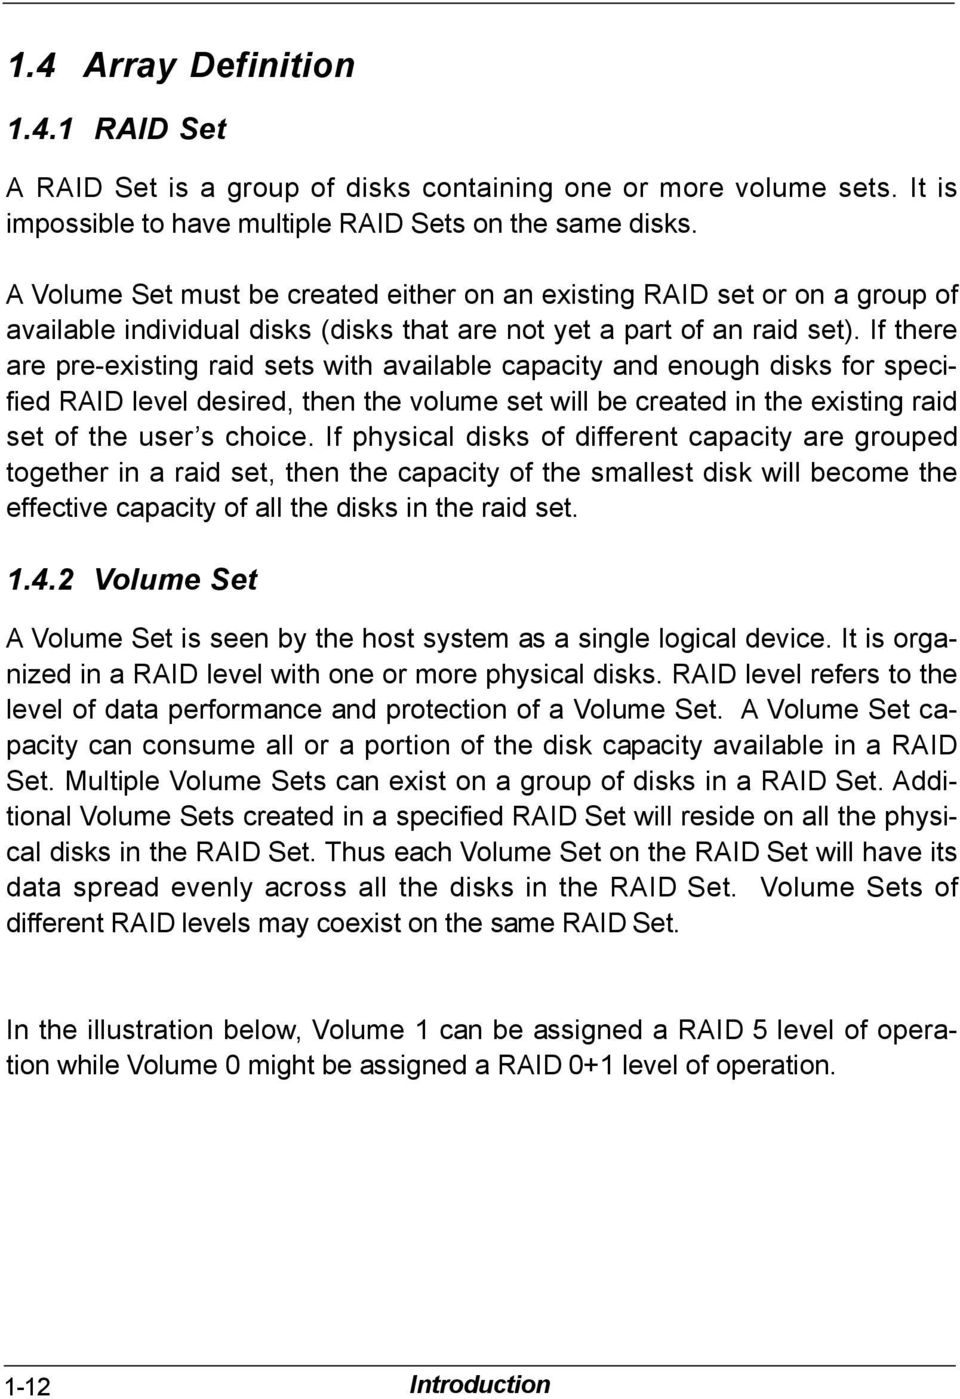 If there are pre-existing raid sets with available capacity and enough disks for specified RAID level desired, then the volume set will be created in the existing raid set of the user s choice.